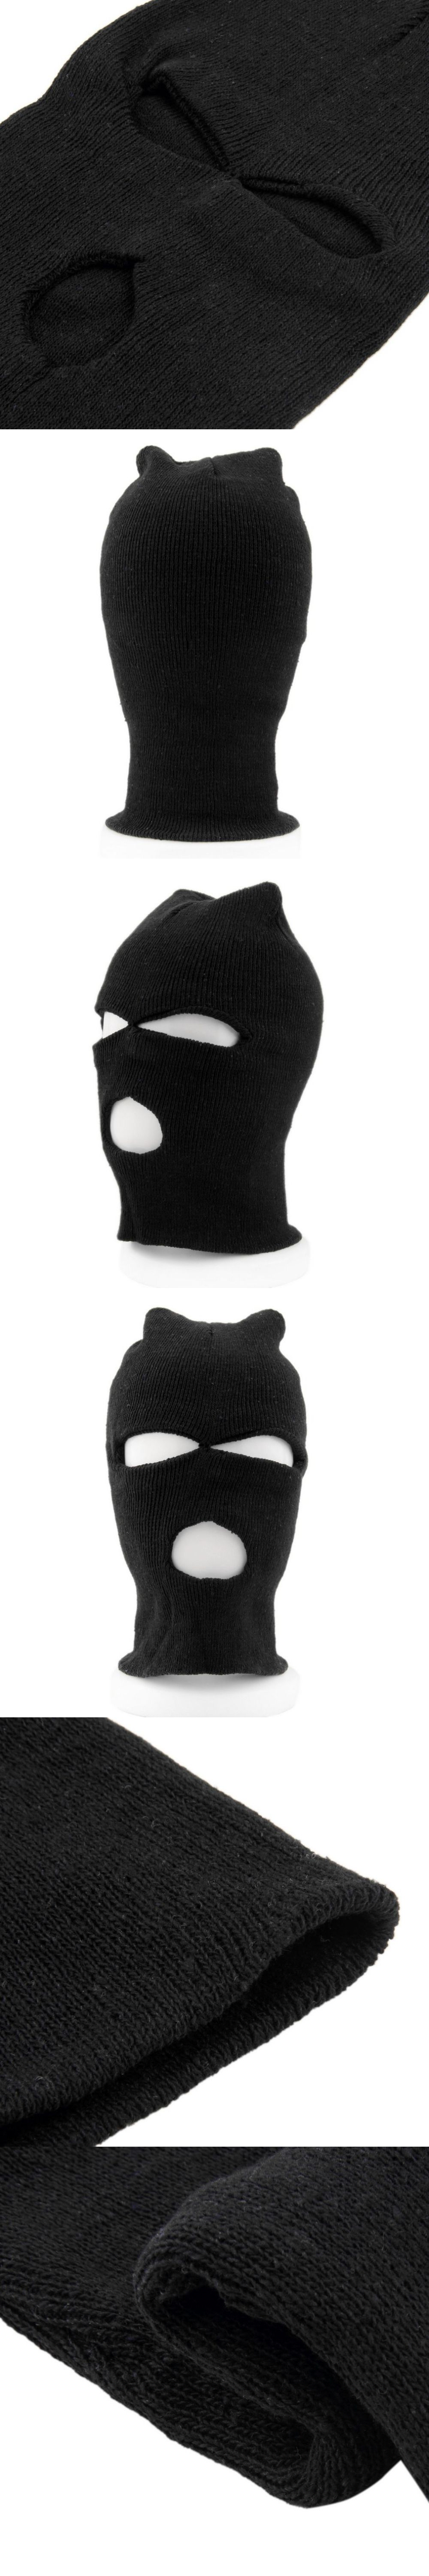 2017 Fashion Full Face Cover Mask Three 3 Hole Balaclava Knit Hat Winter  Stretch Snow mask 2f24799140d2